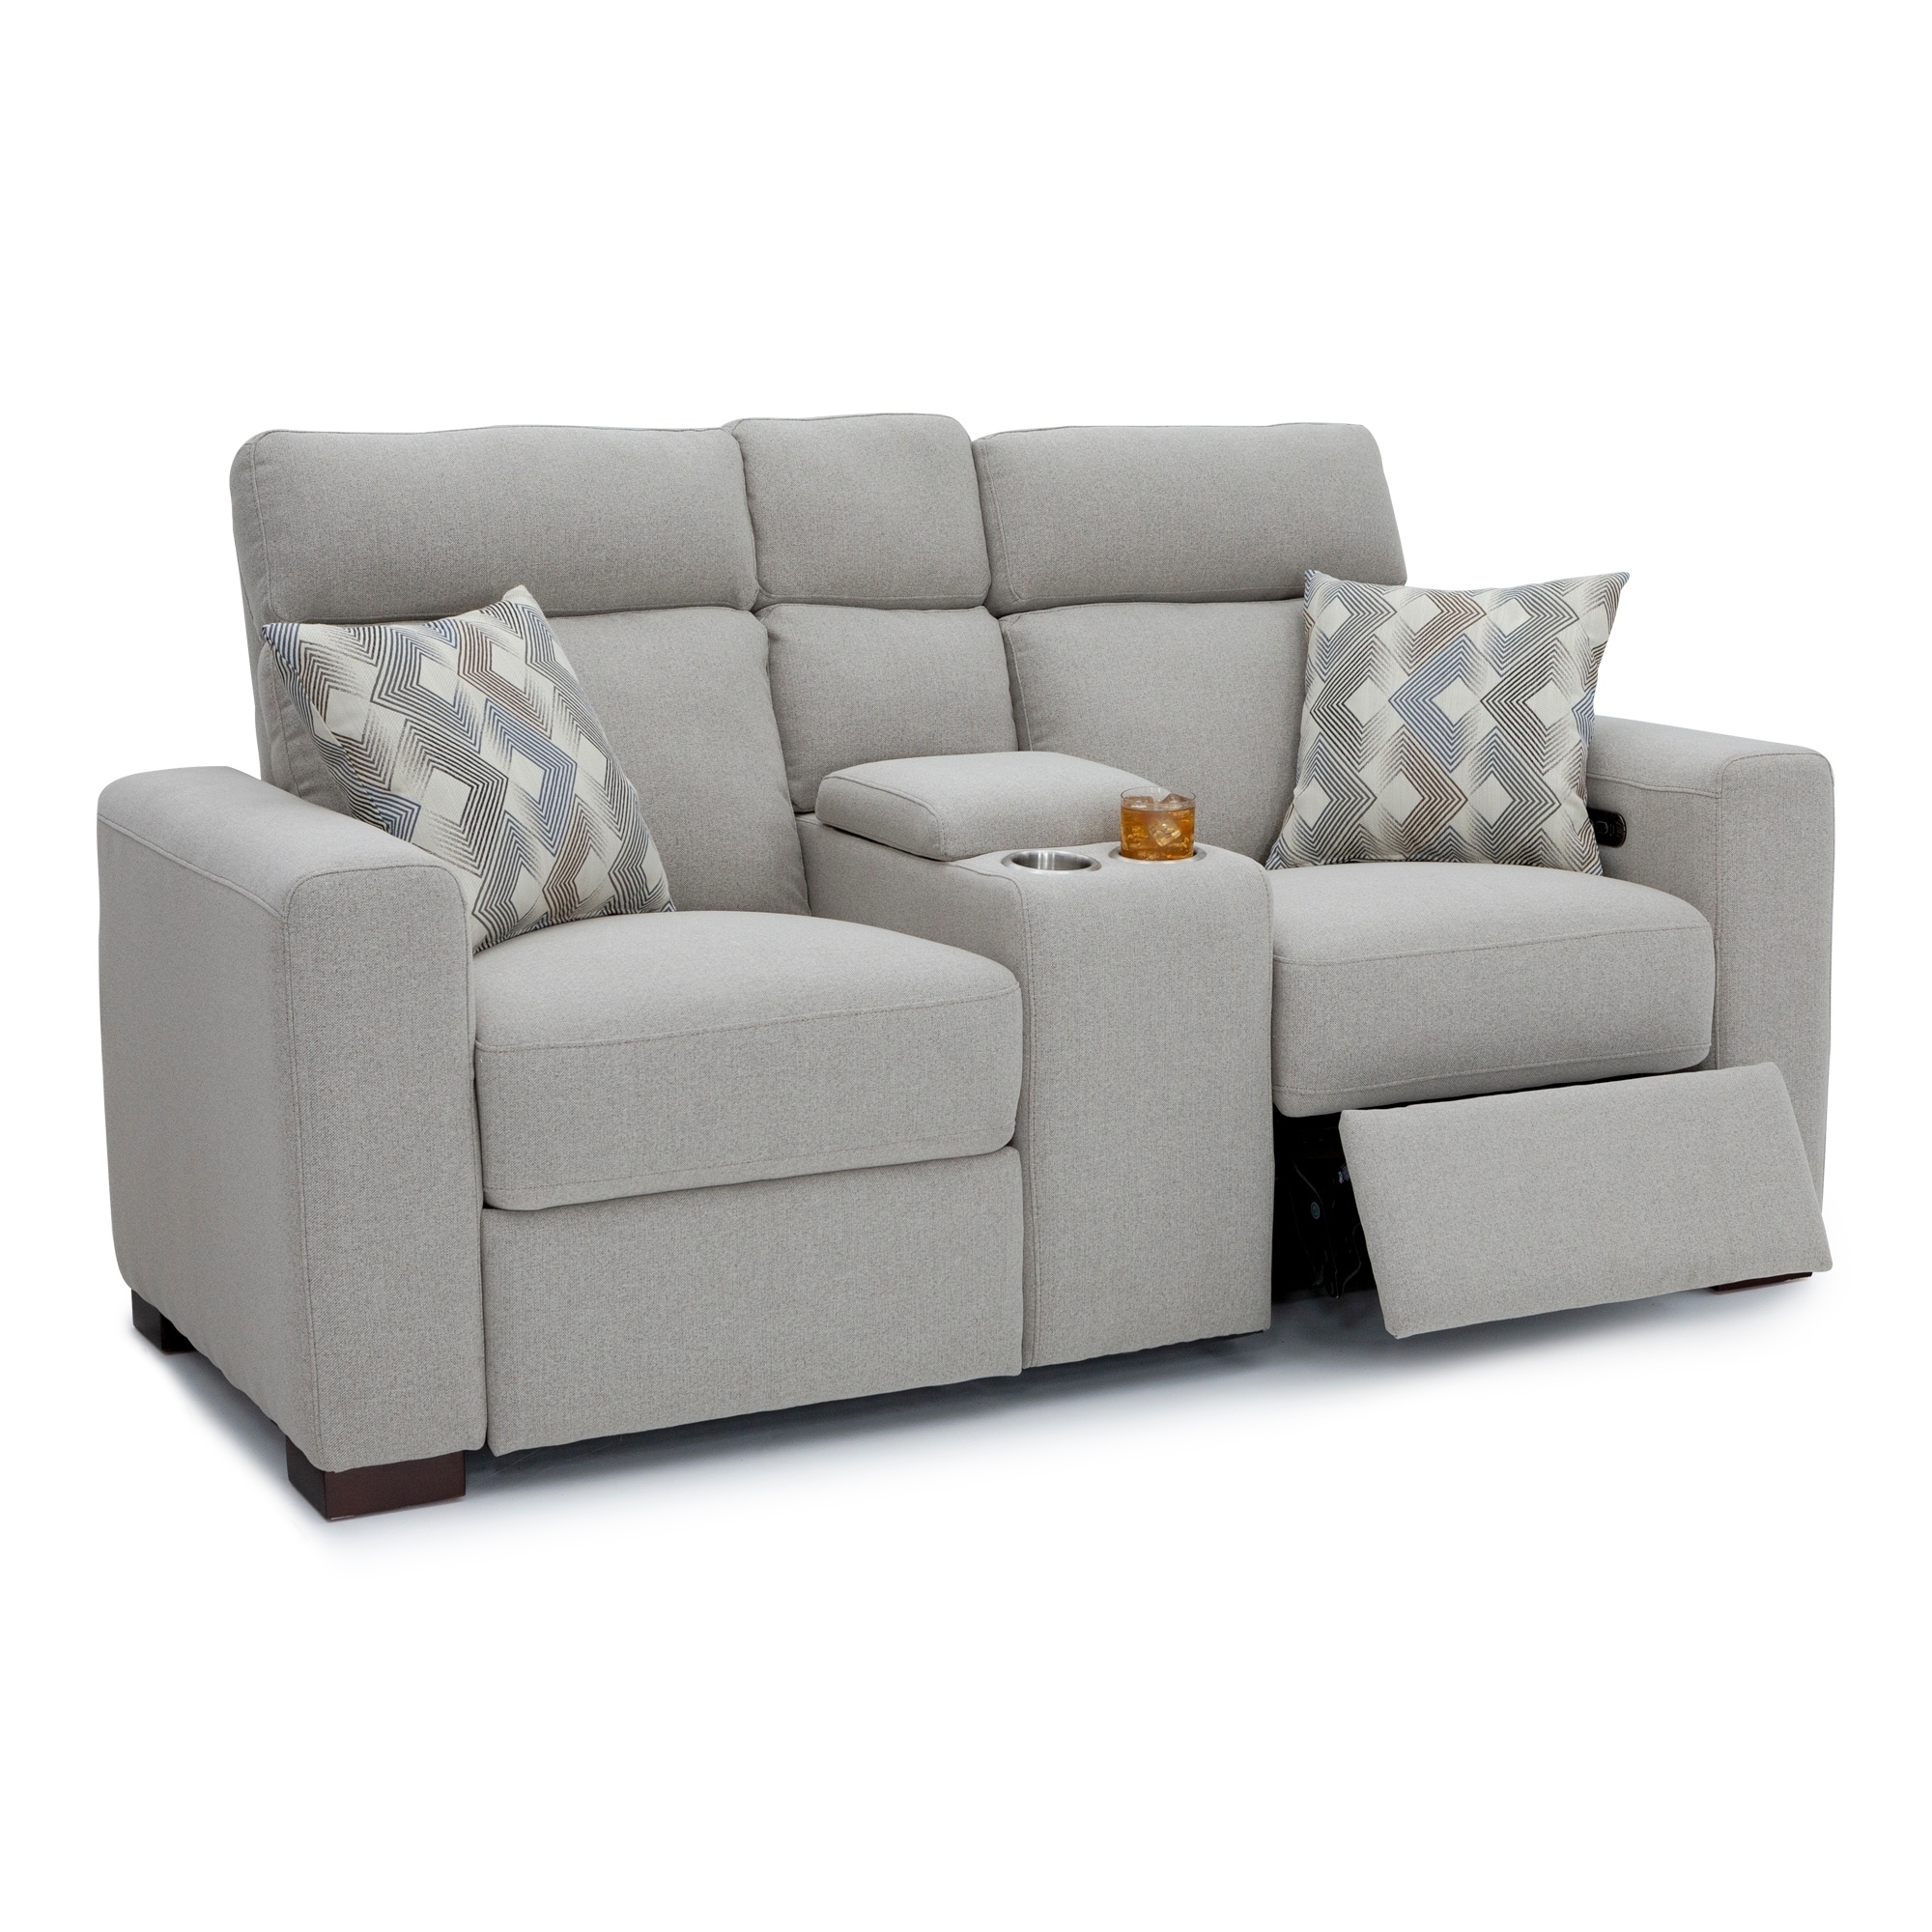 Seatcraft Capital Home Theater Seating Fabric Power